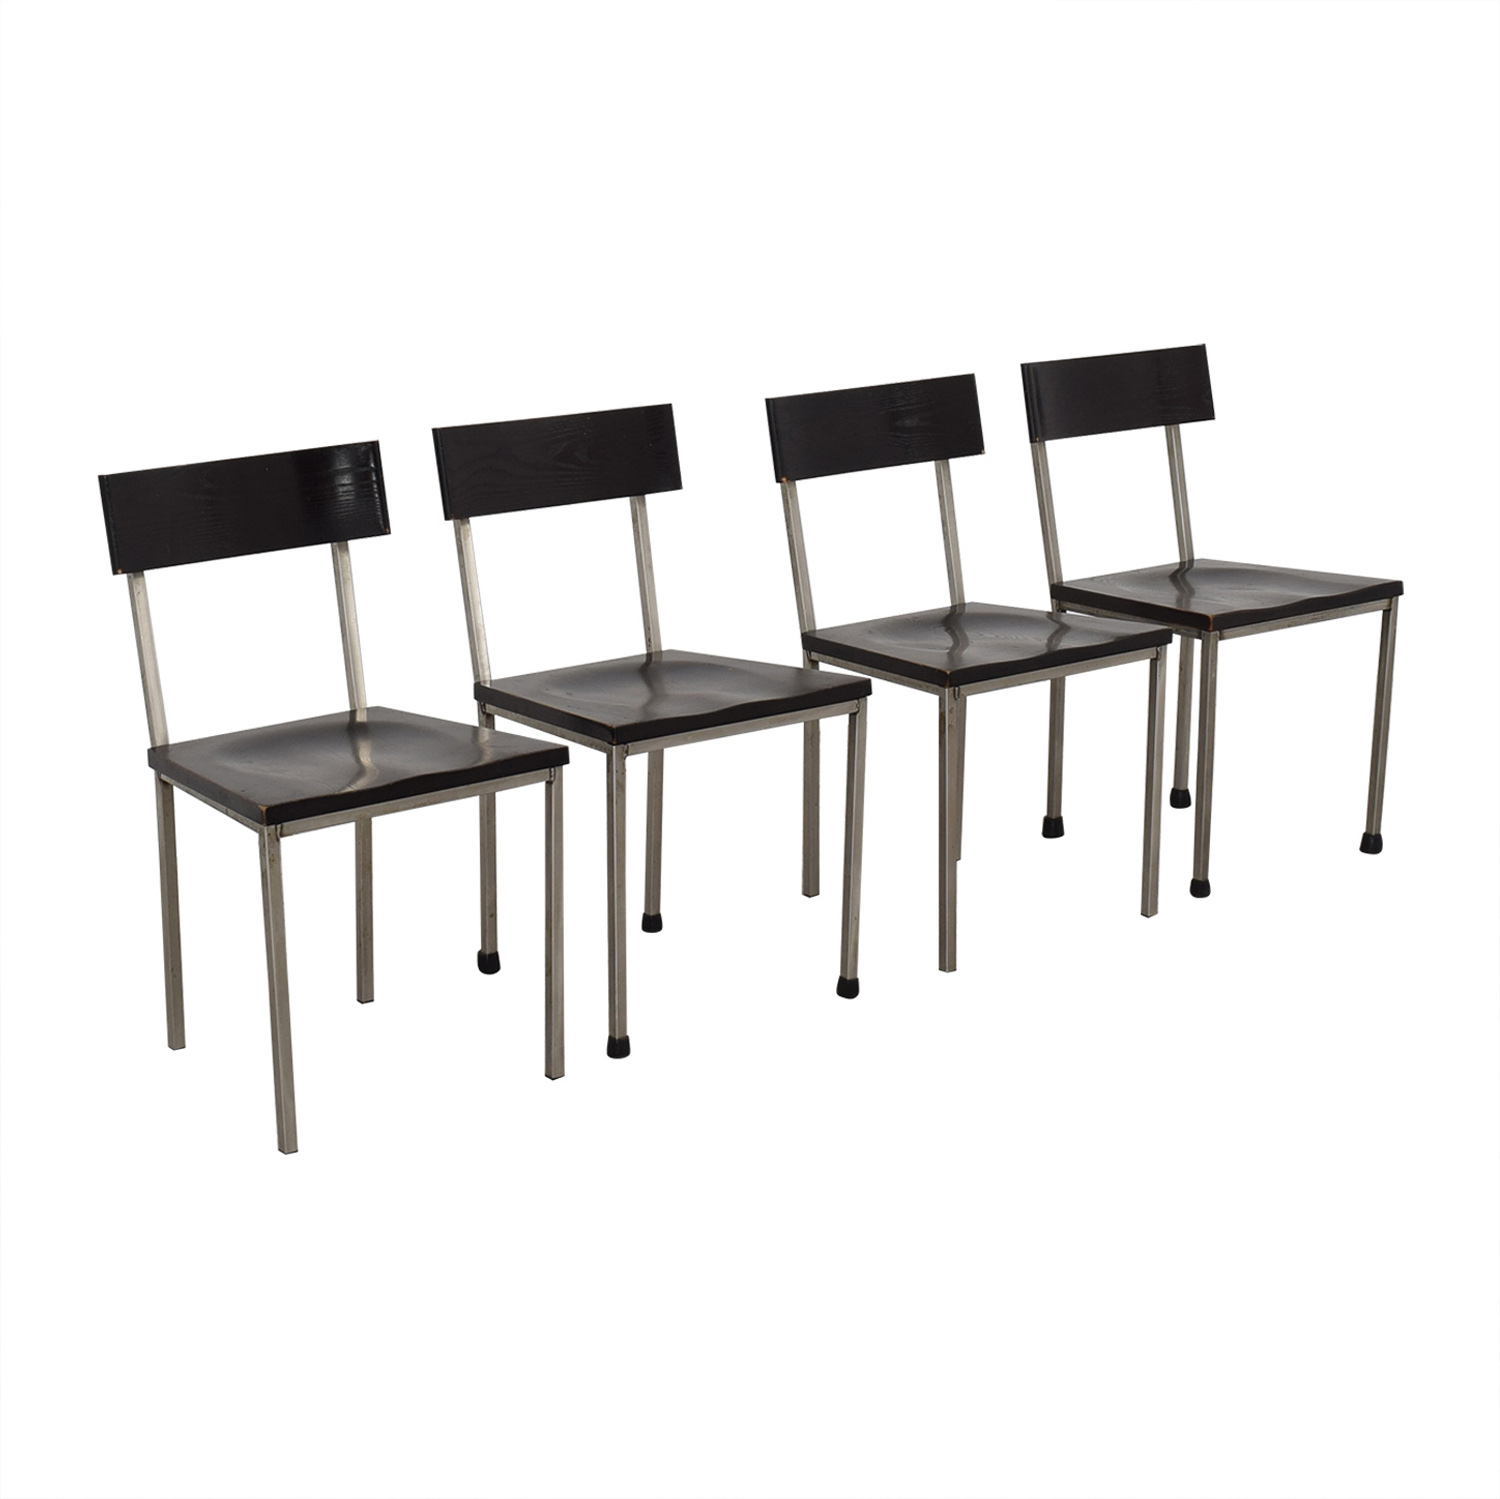 Parallel Lines Parallel Lines Dining Chairs used